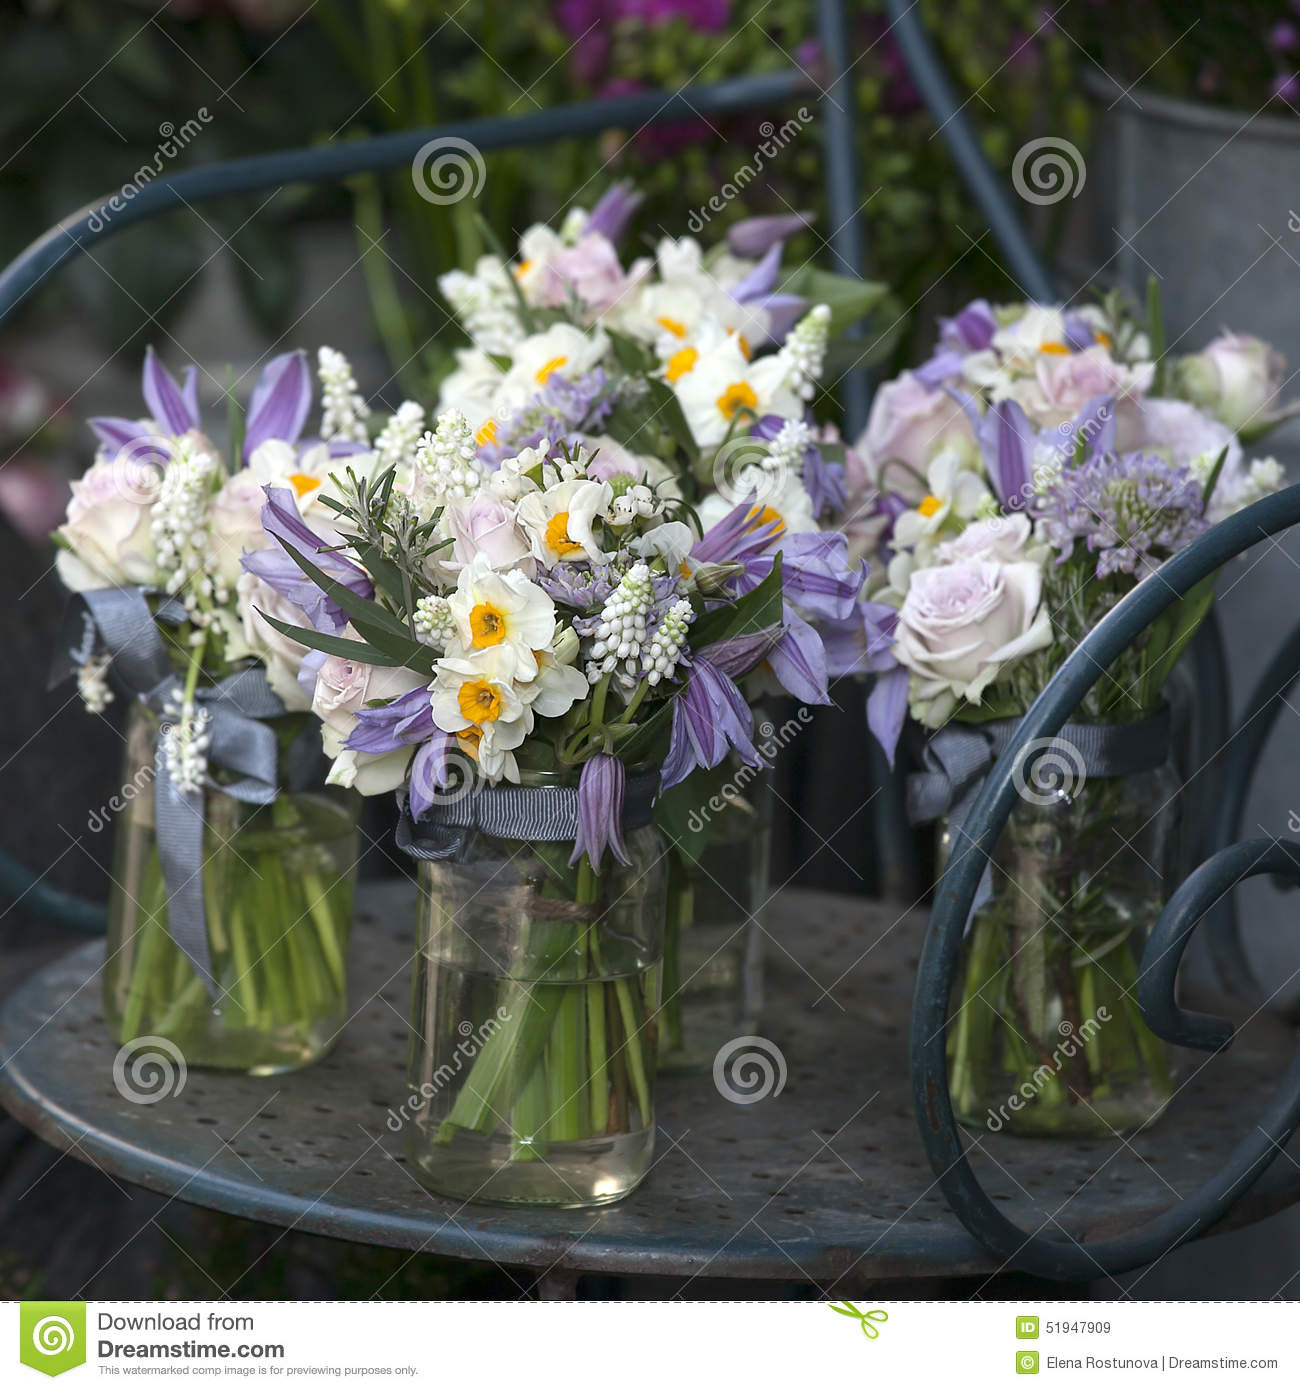 decoration of dining table bouquet of white narcissus in vase o royalty free stock photography. Black Bedroom Furniture Sets. Home Design Ideas